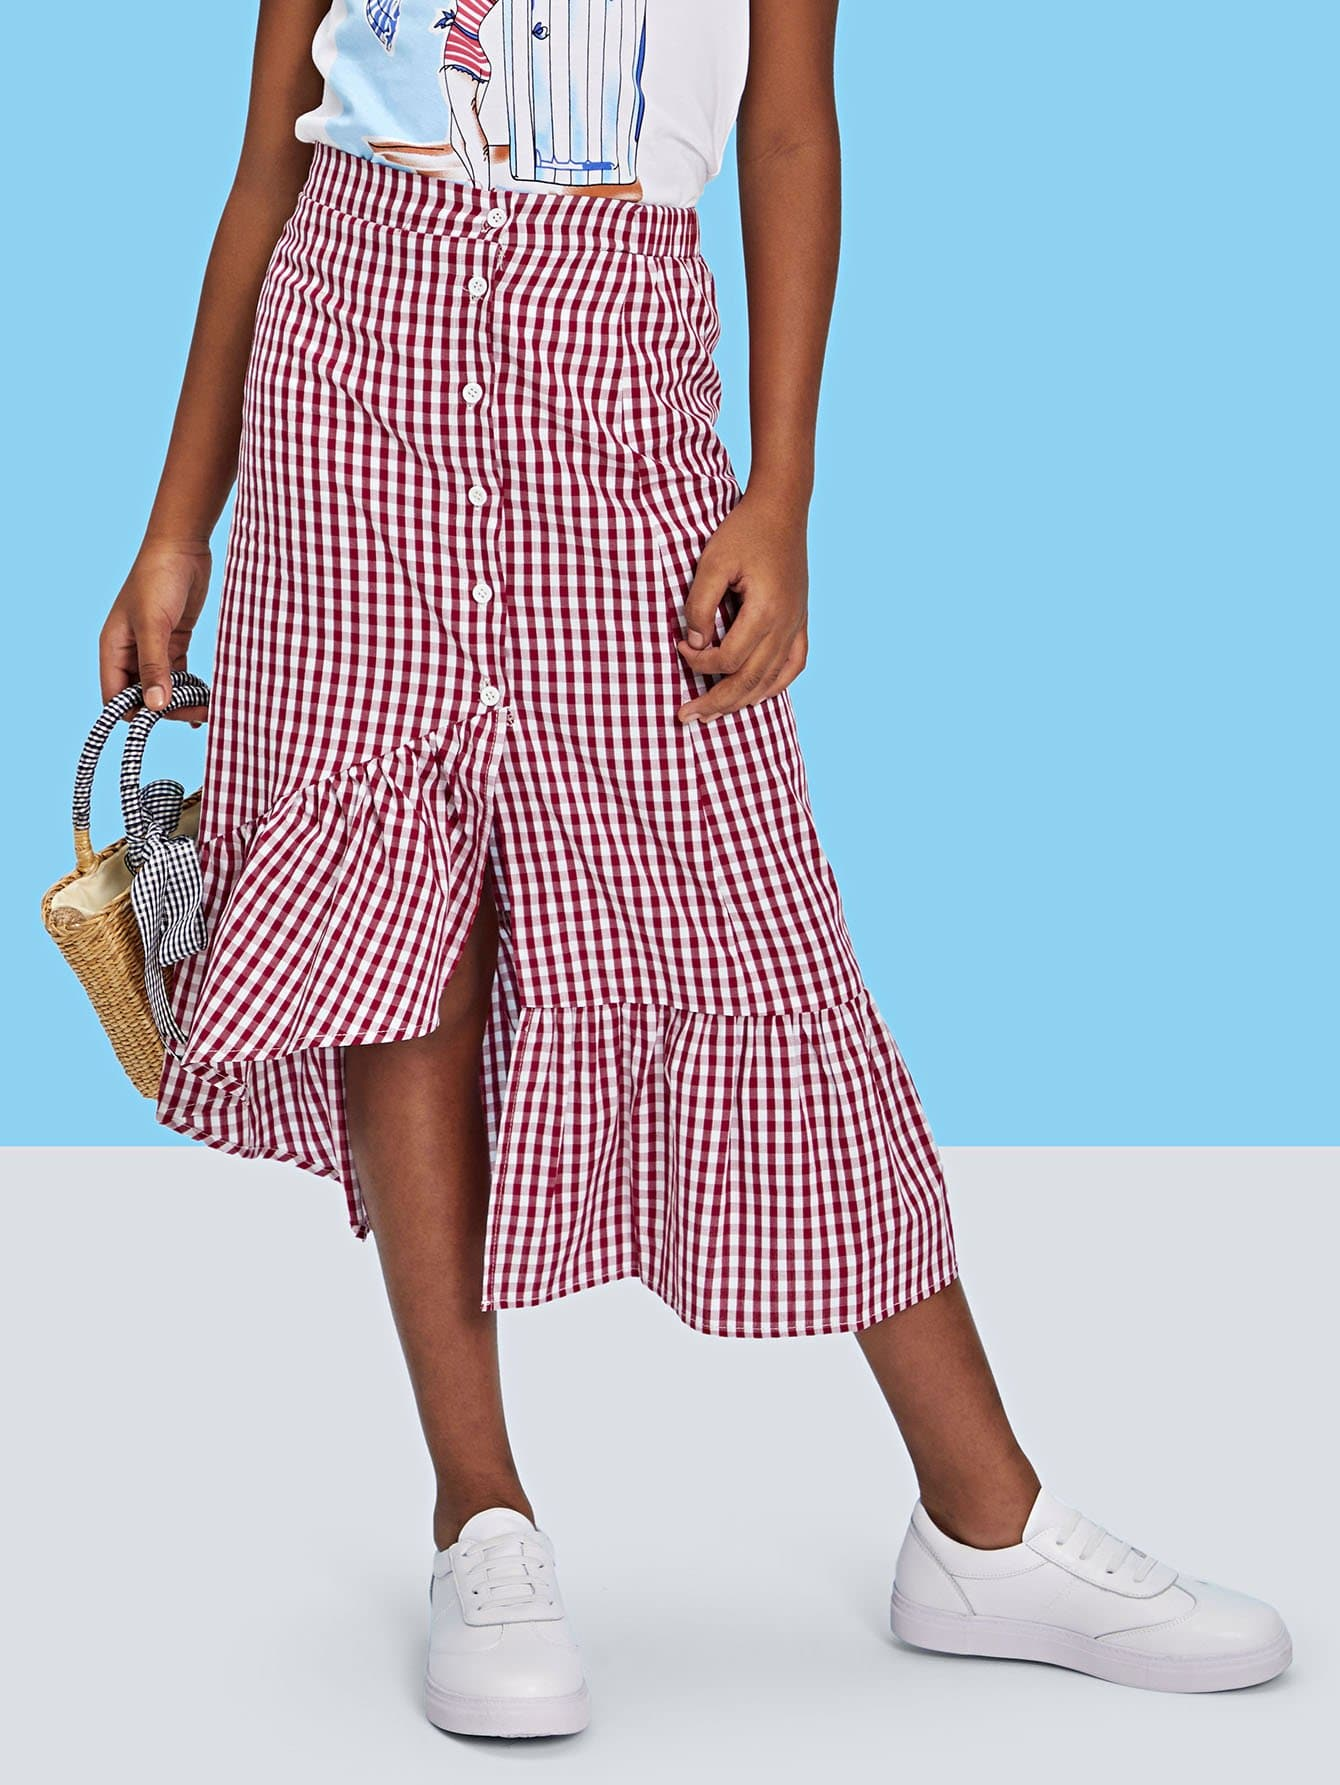 Button Front Asymmetric Ruffle Gingham Skirt ruffle waist zip back scallop hem embroidered gingham skirt